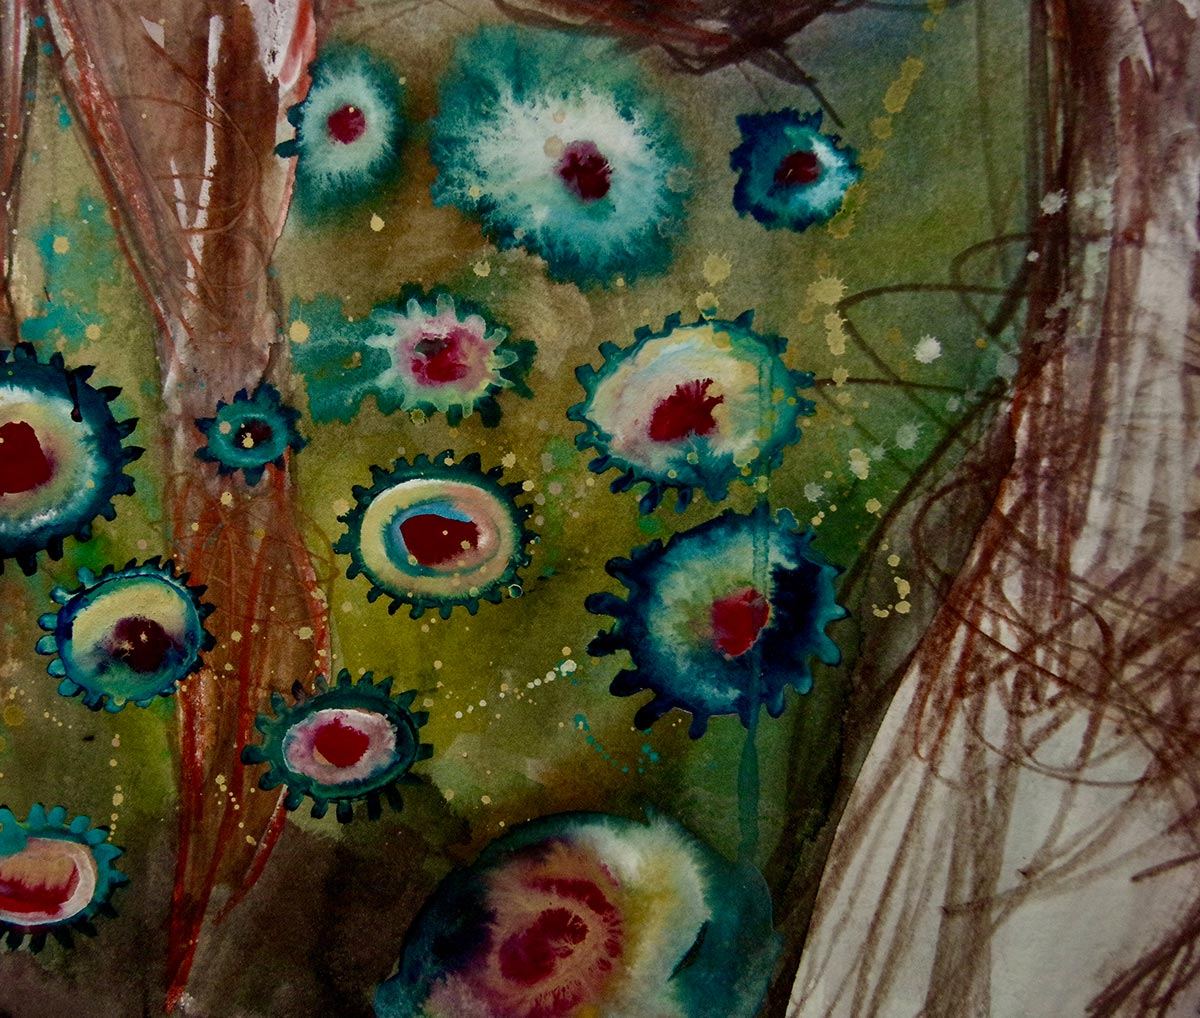 Close up detail Circular putrid jewel like coloured macrobiotic virus shapes float across the image to the right are scribbled lines that form the man's leg.